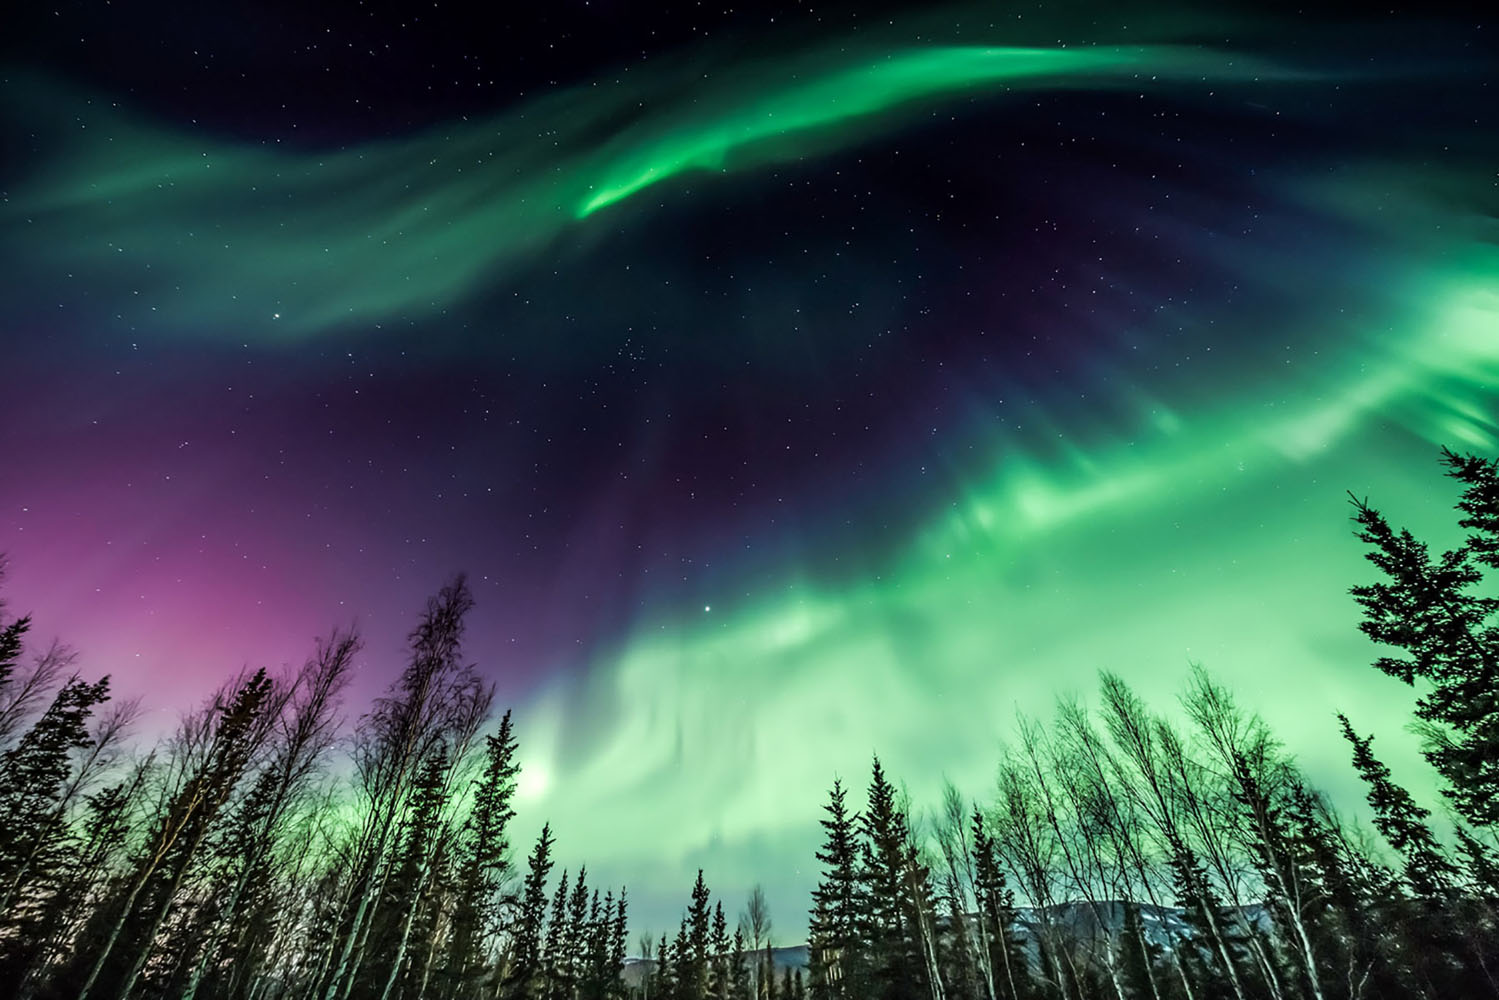 Aurora borealis over tree line in Alaska